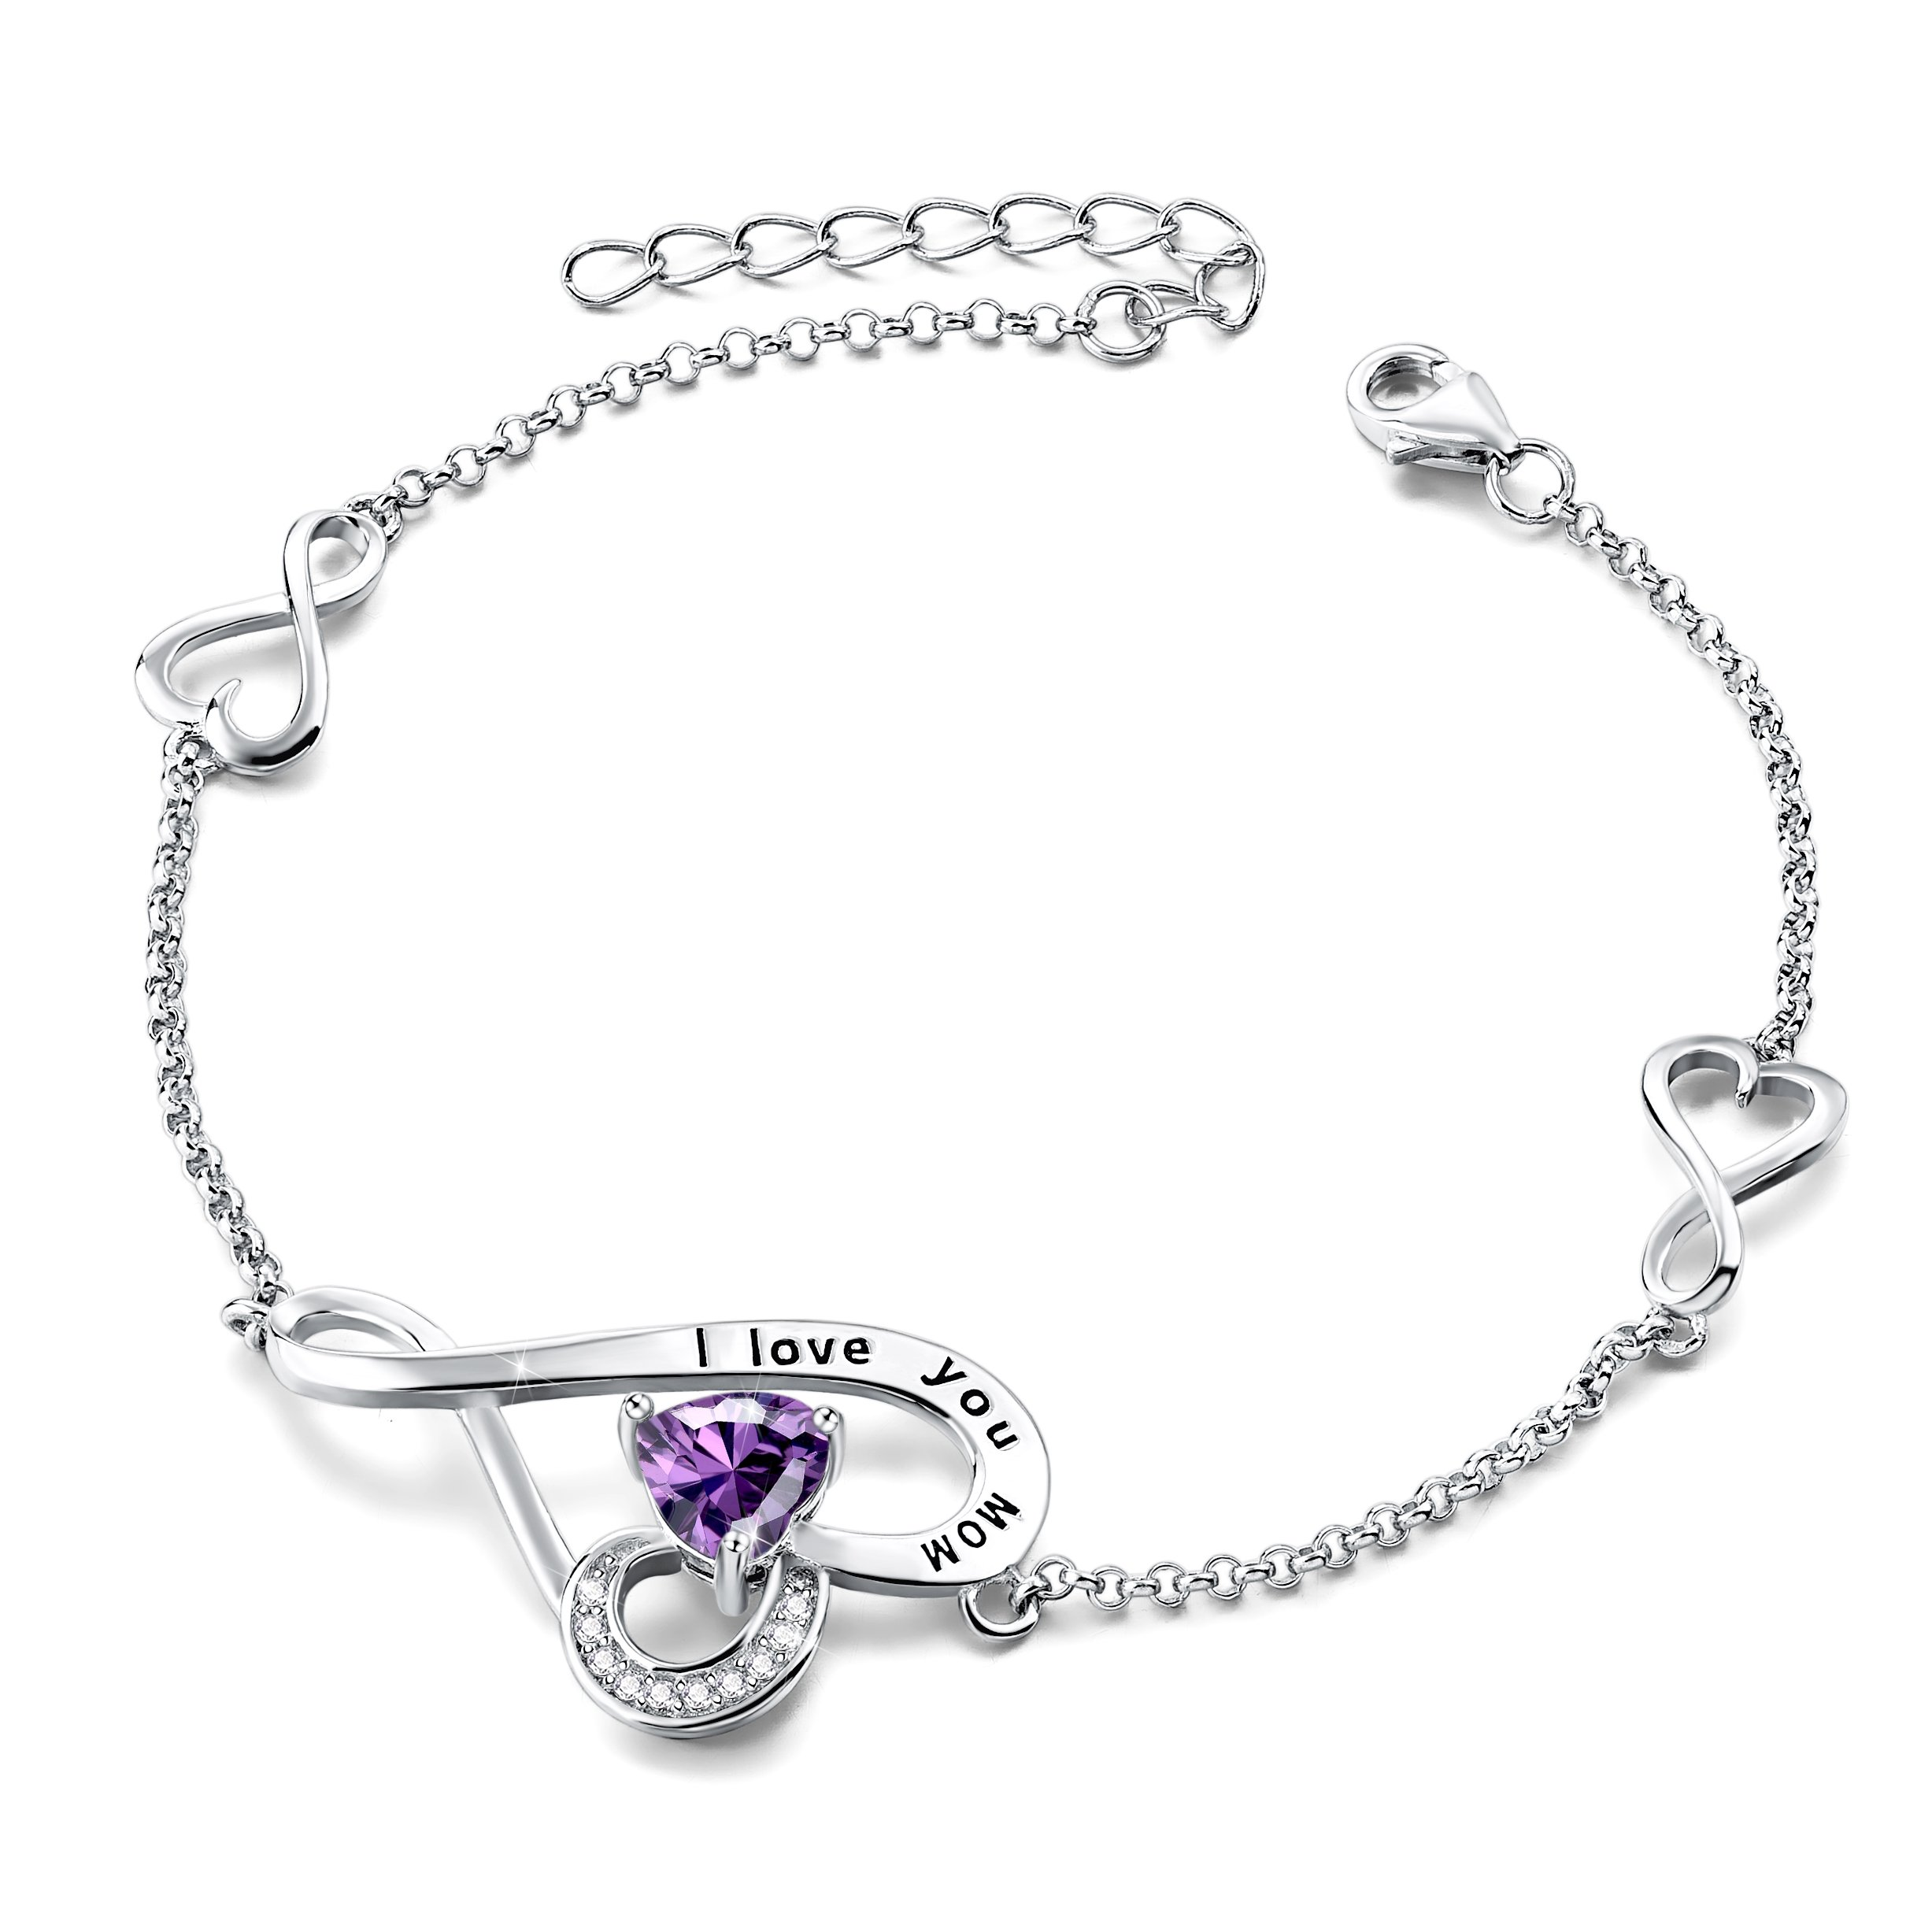 Mother's Birthday Gifts I Love You Mom Sterling Silver Love Heart Infinity Adjustable Charm Bracelet (Purple)